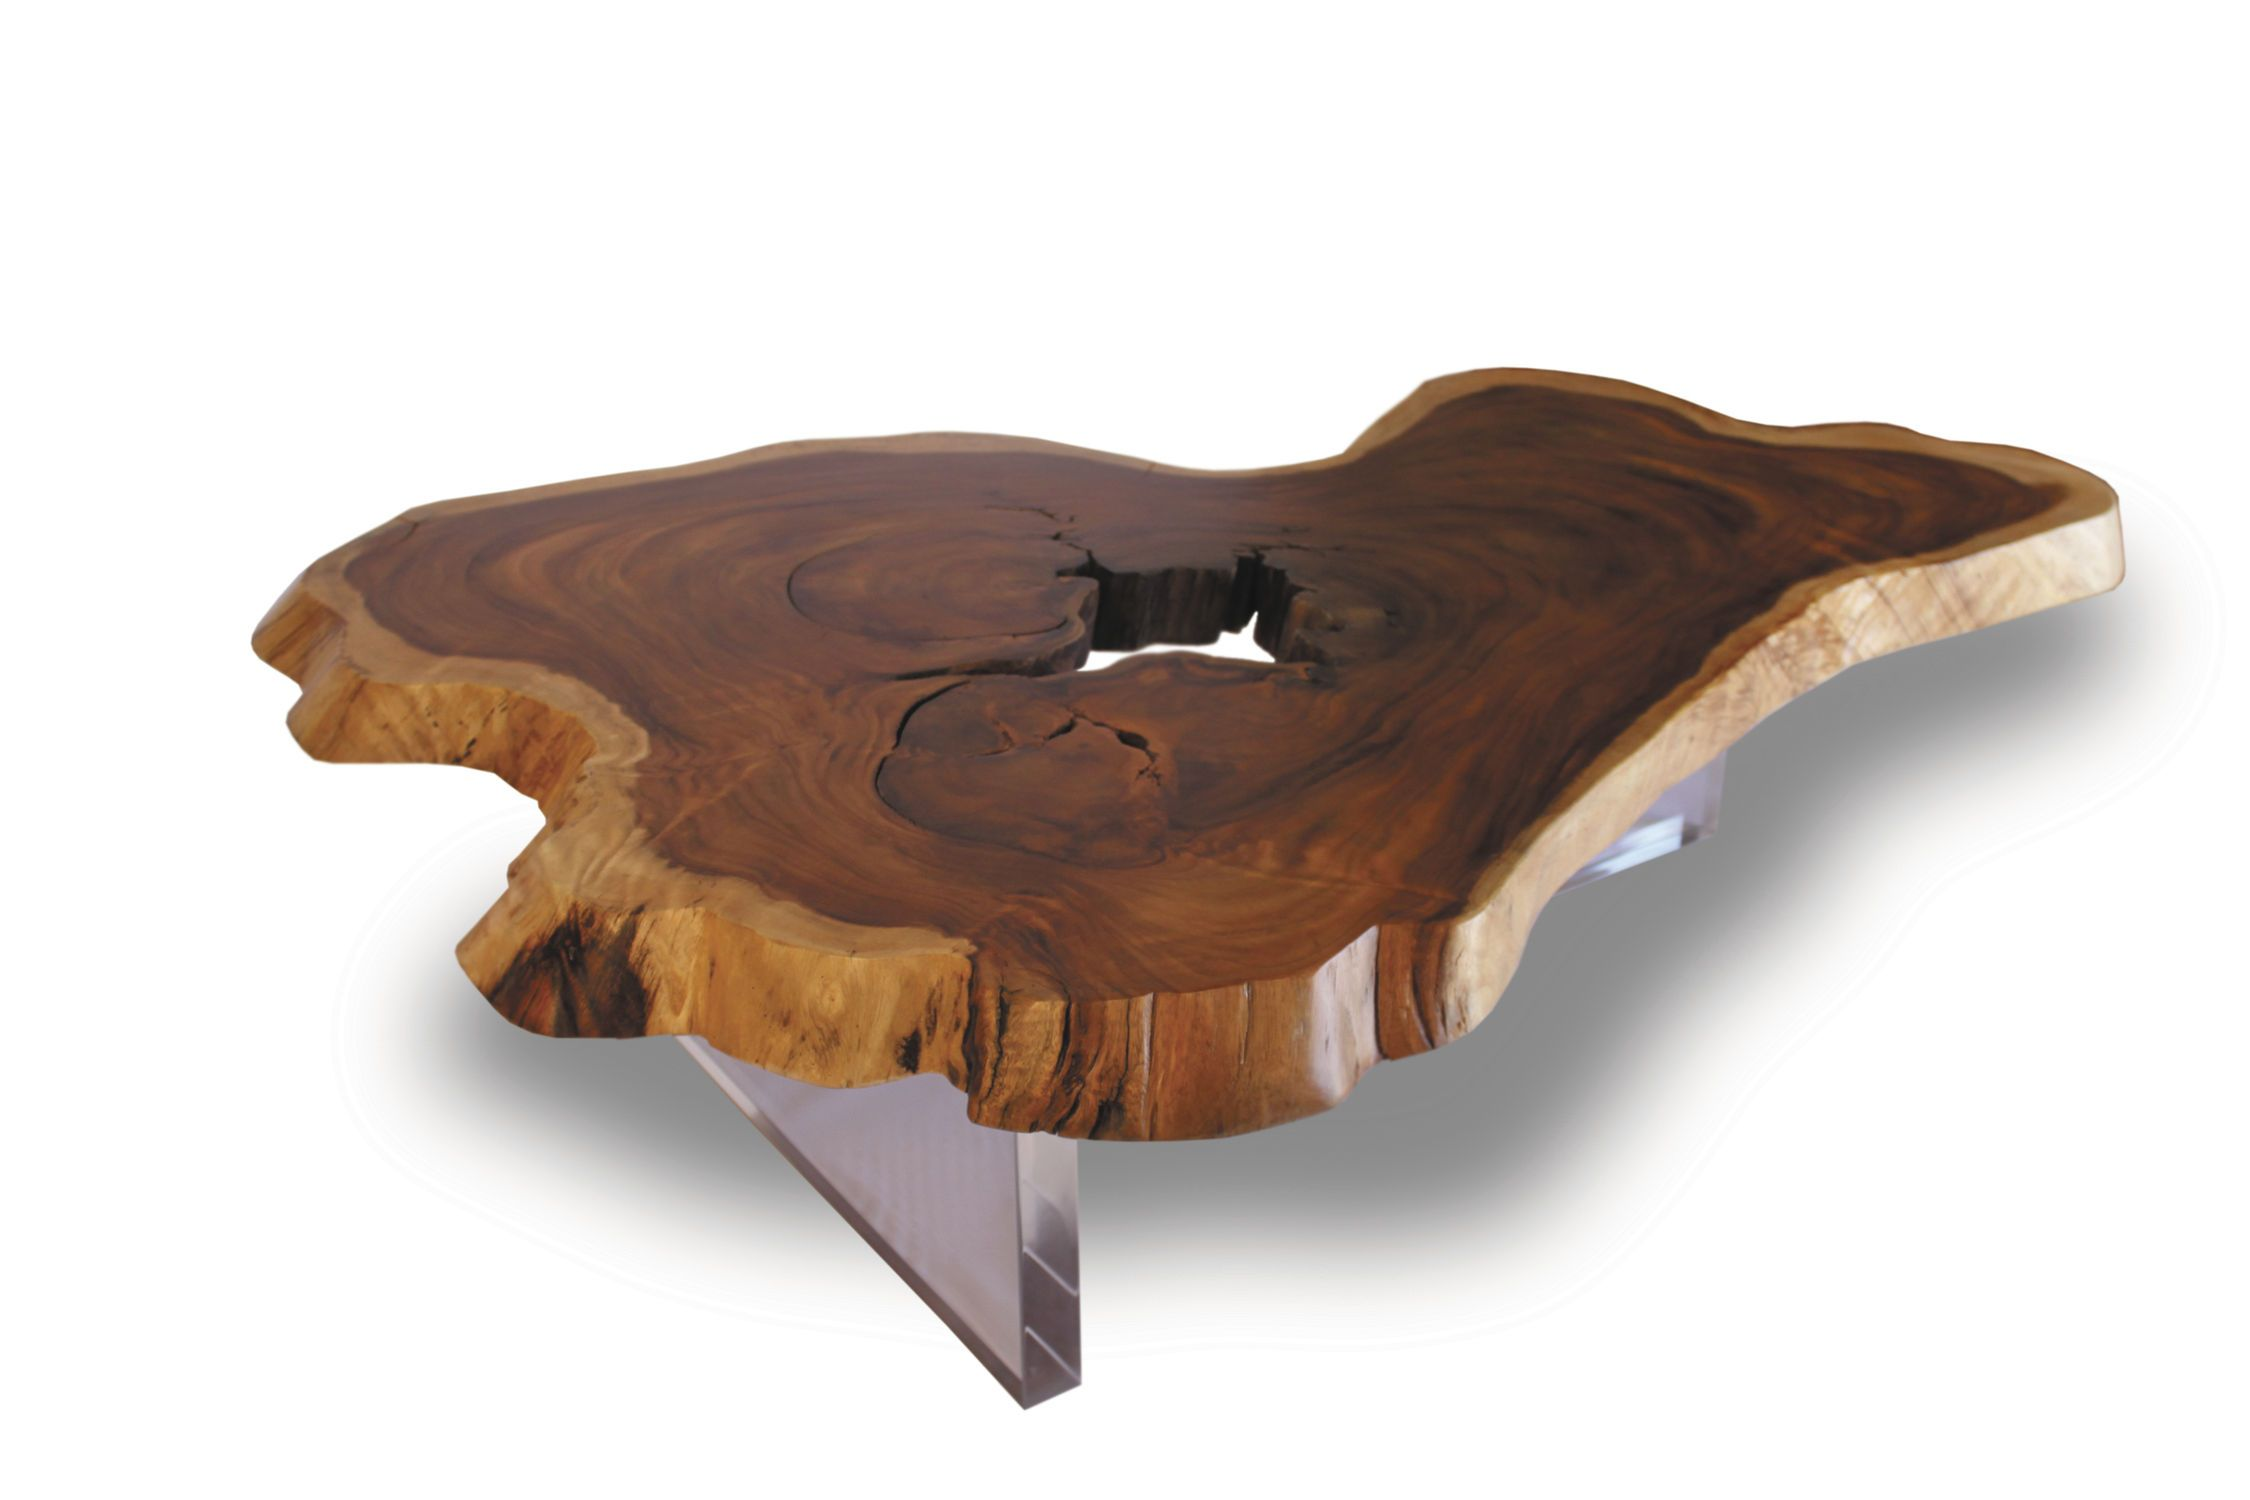 Contemporary coffee table in solid wood rotsen furniture cabin contemporary coffee table in solid wood rotsen furniture geotapseo Choice Image